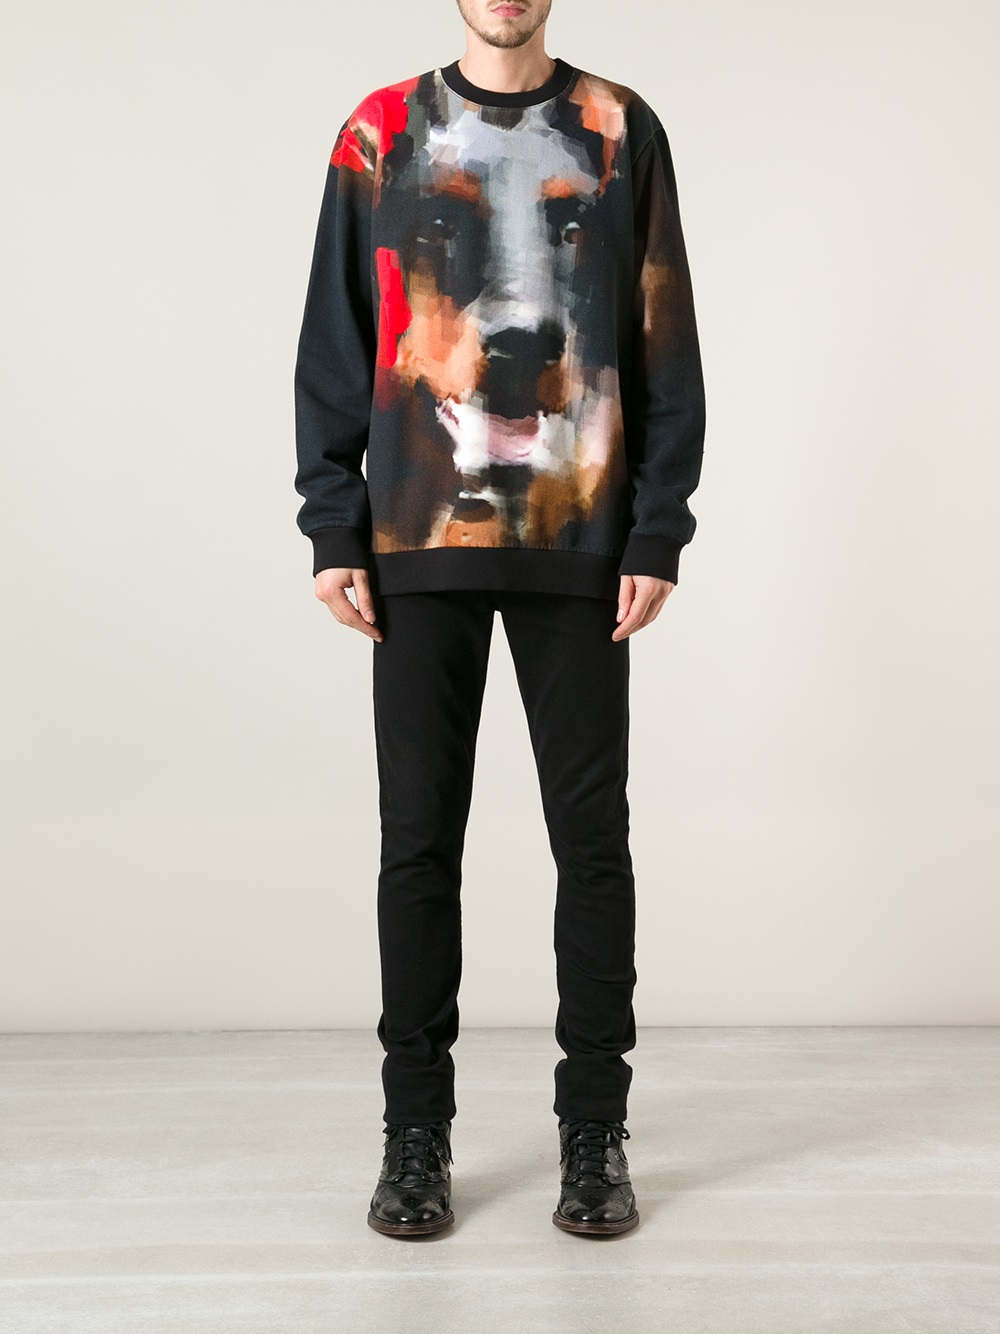 Givenchy Rottweiler Sweater menswear men's fashion